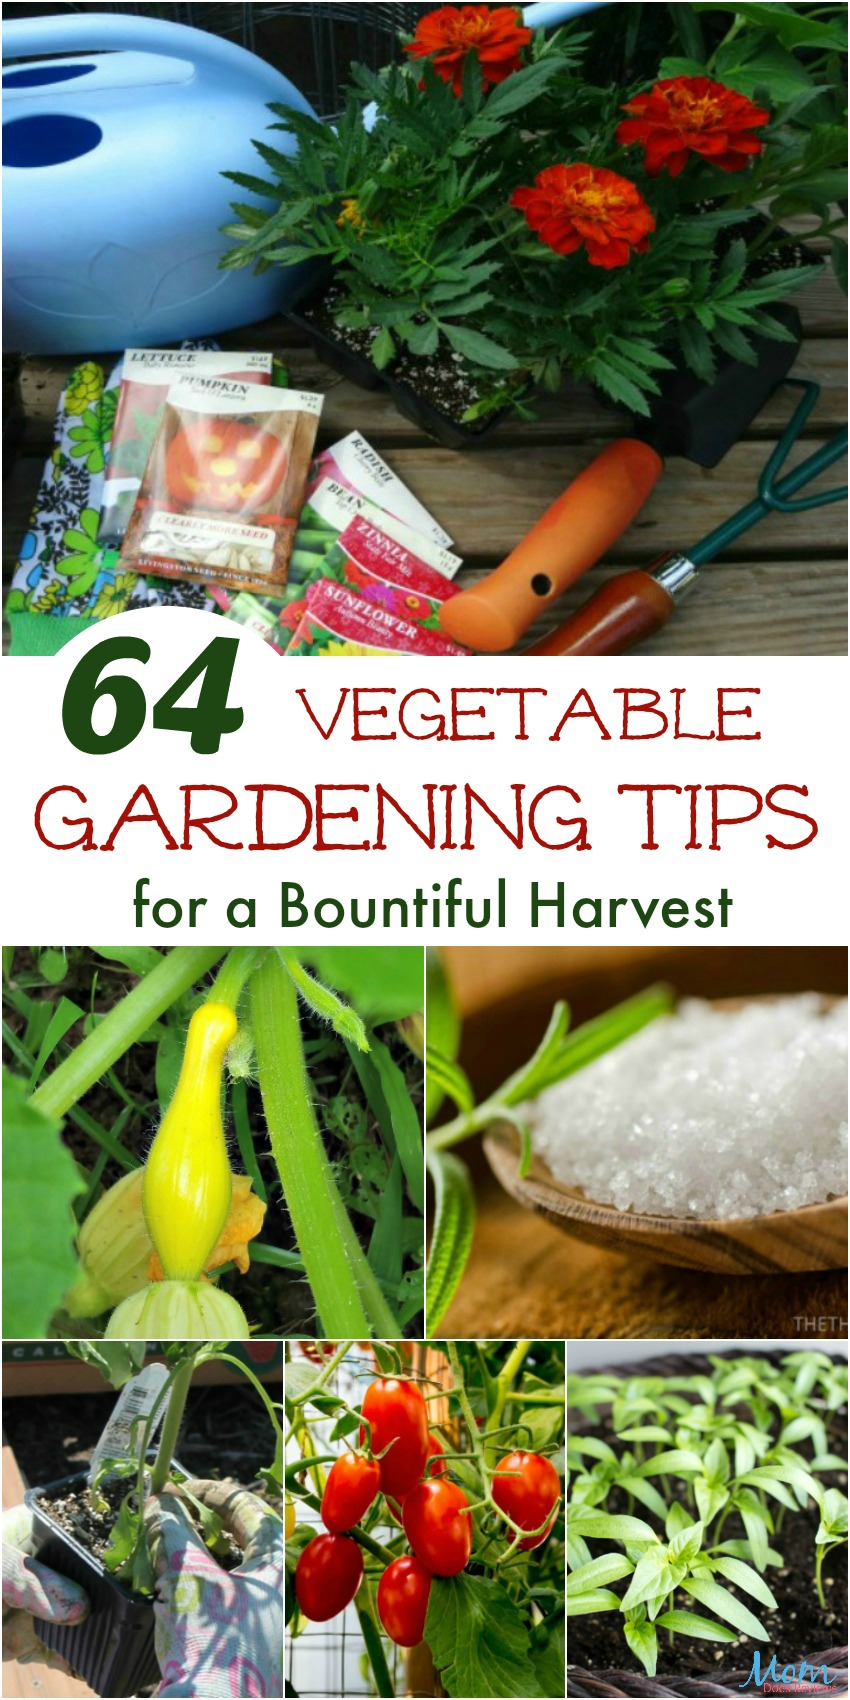 64 Vegetable Gardening Tips for a Bountiful Harvest banner